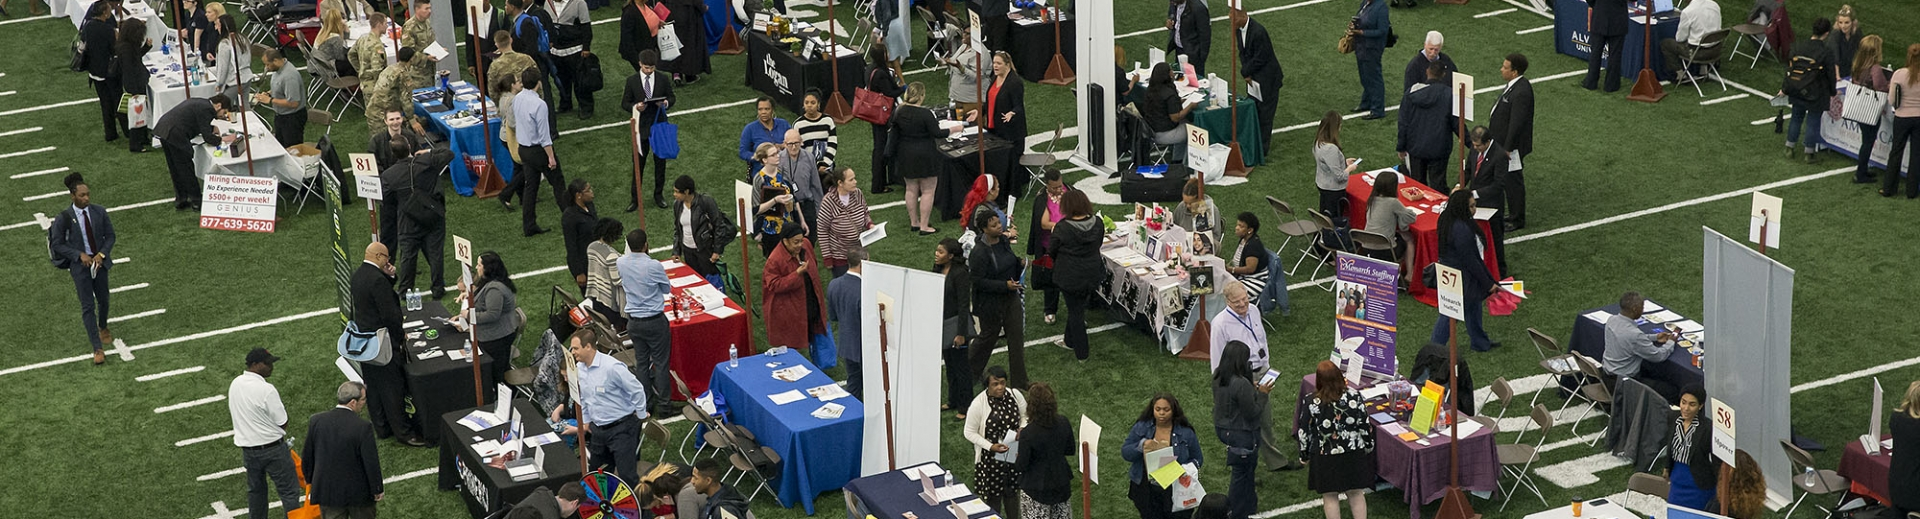 community members at a crowded job fair